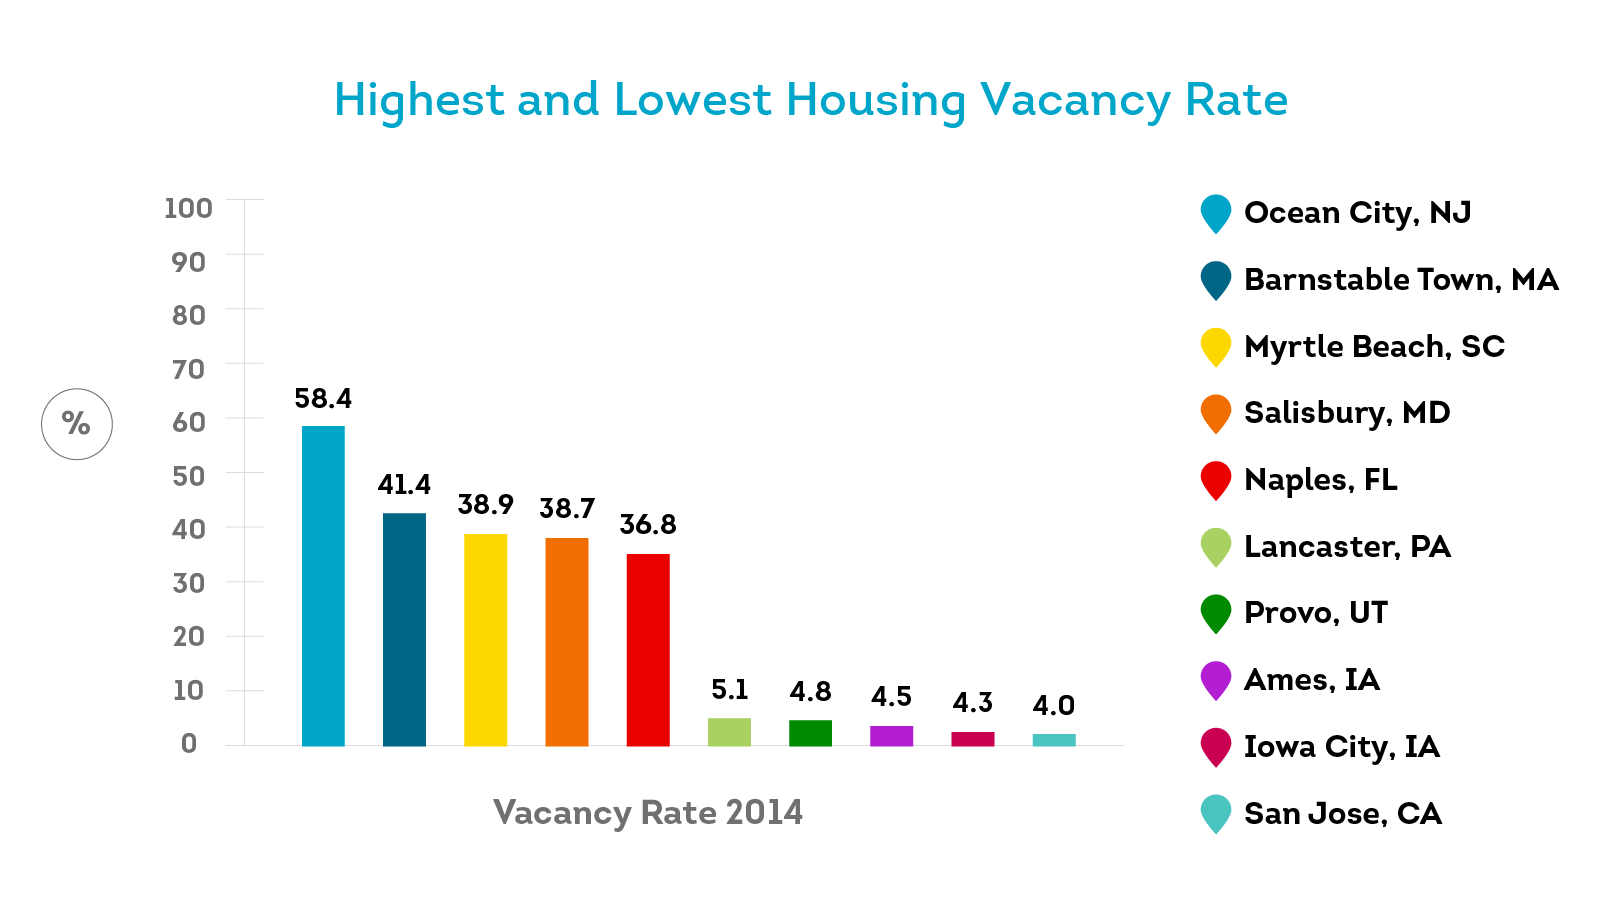 The national vacancy rate is 7.3%, but local vacancy rates can vary dramatically